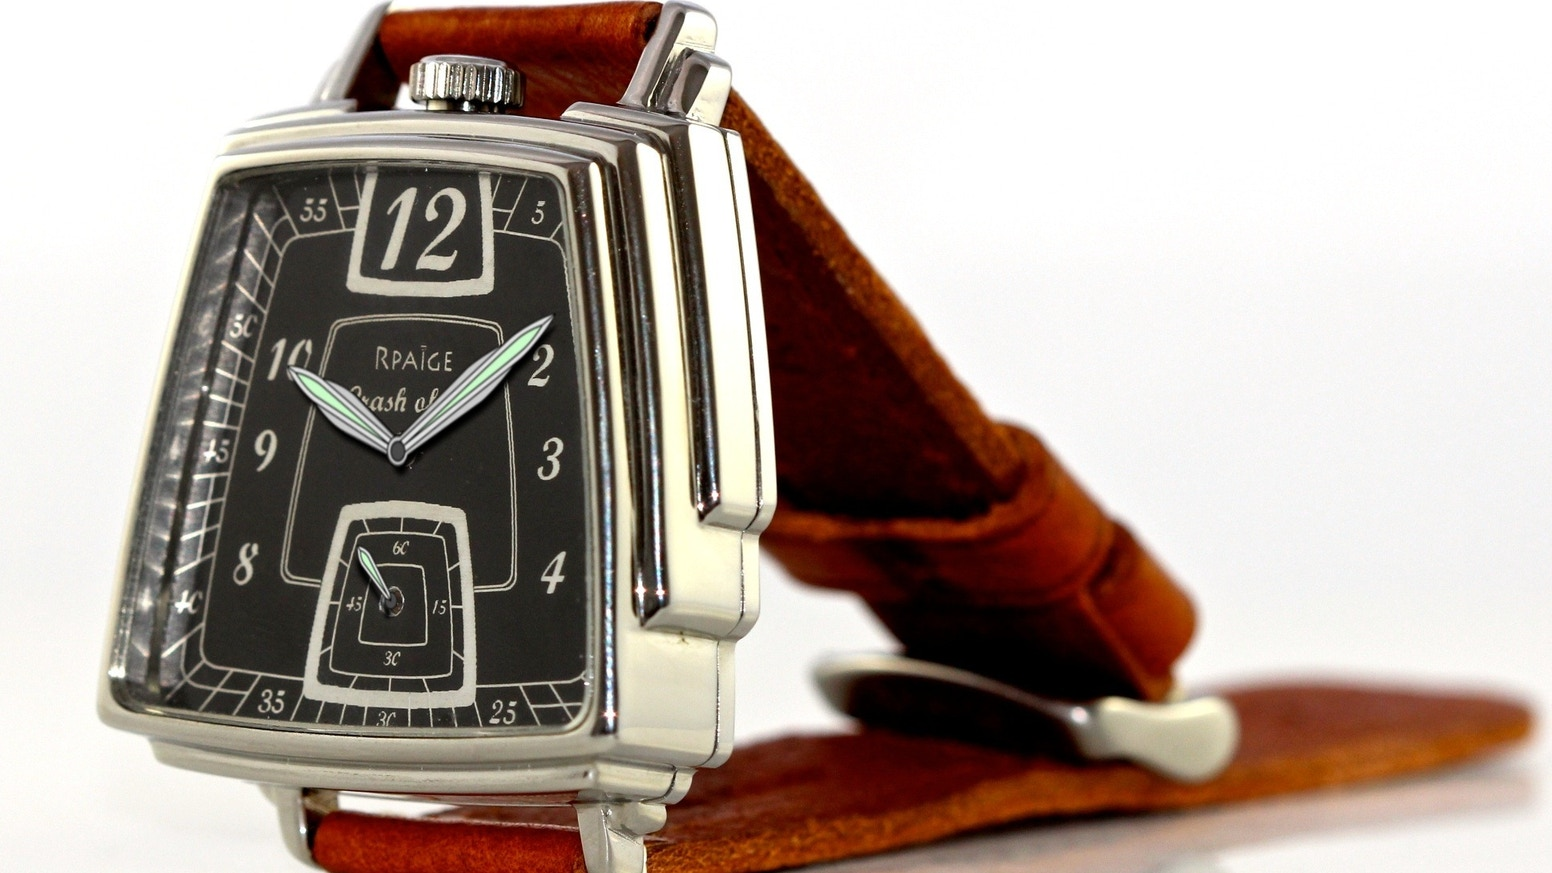 Limited Edition of 49 art deco watches with vintage American pocket watch movements.